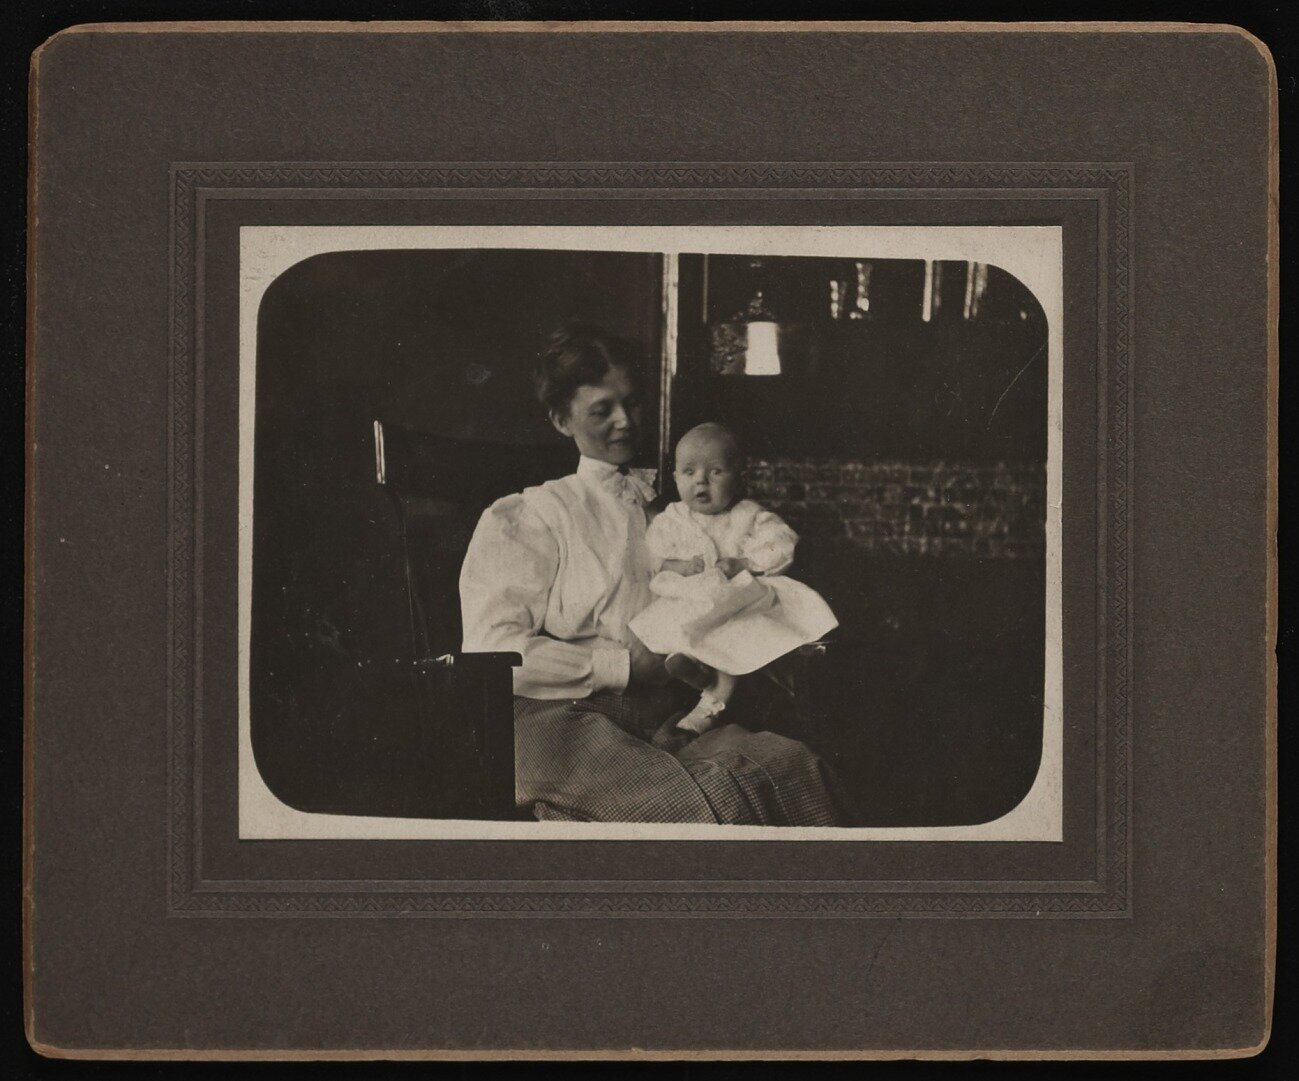 Lundeberg at 8 months old with her mother, Selma.